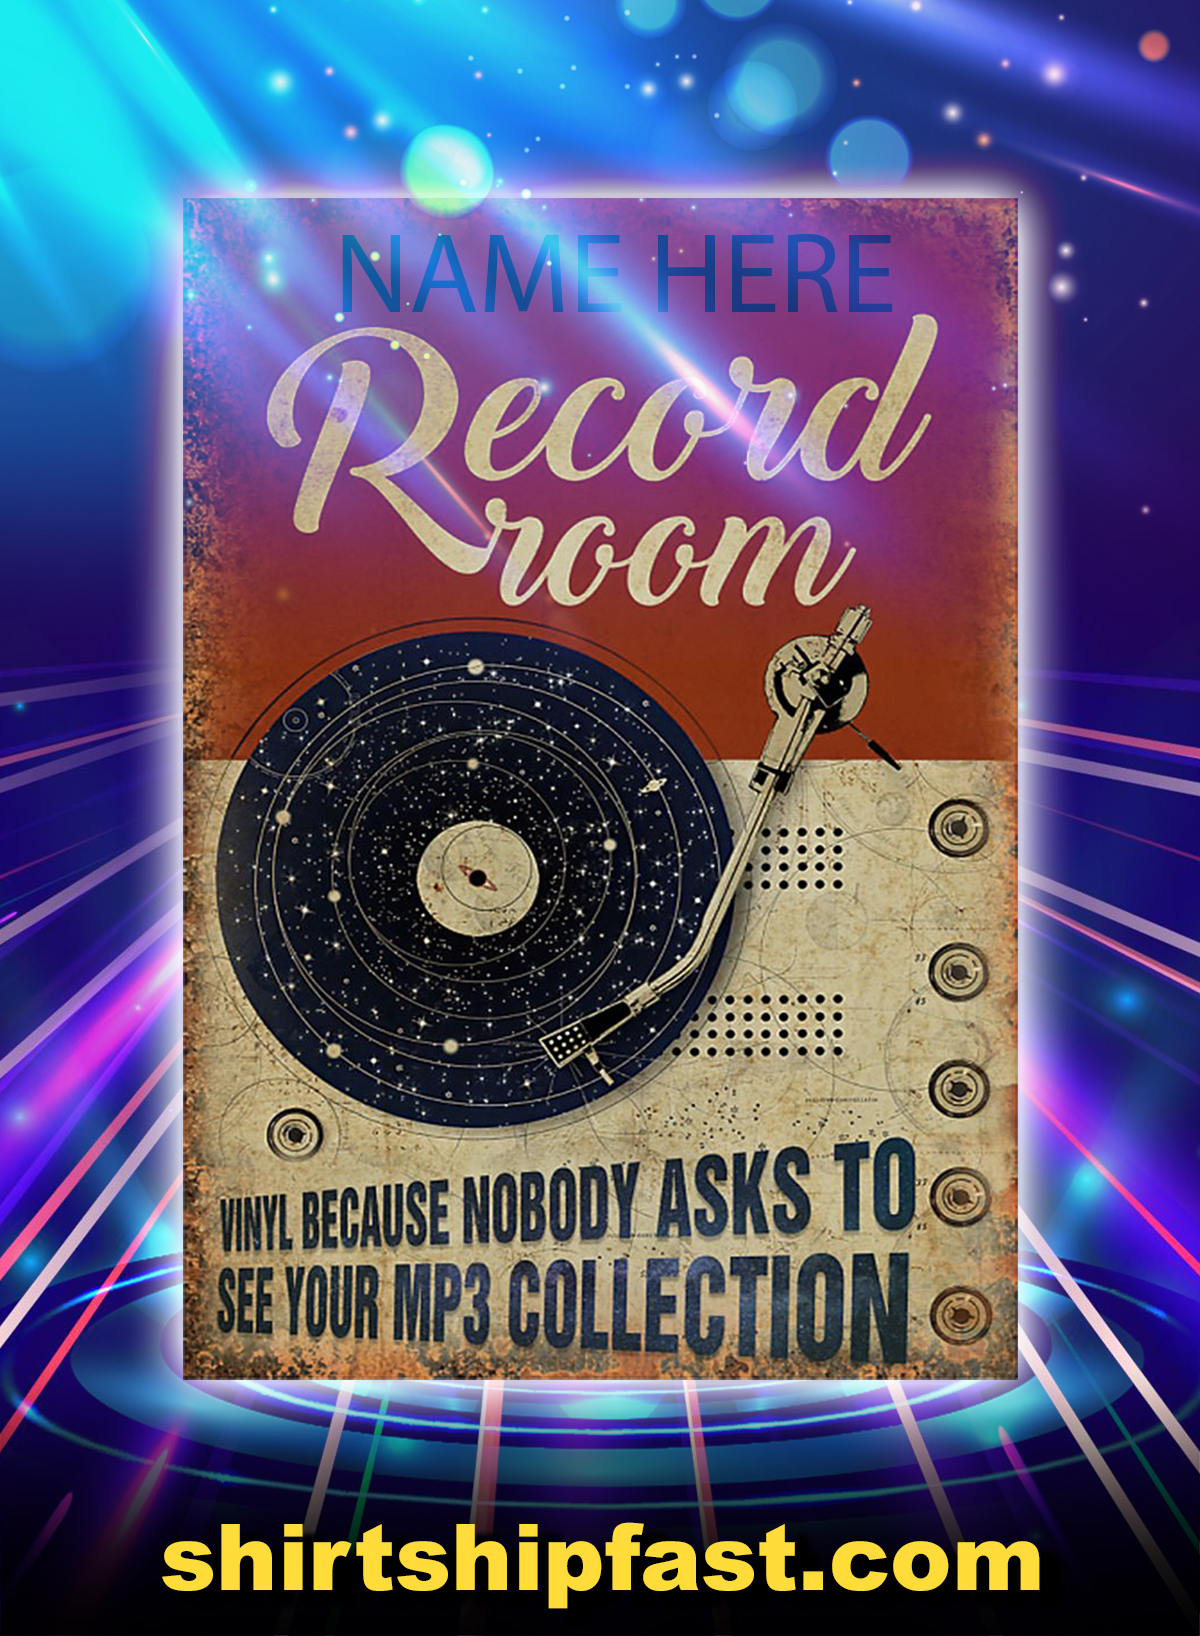 Custom name Record room vinyl because nobody asks to see your mp3 collection poster - A1